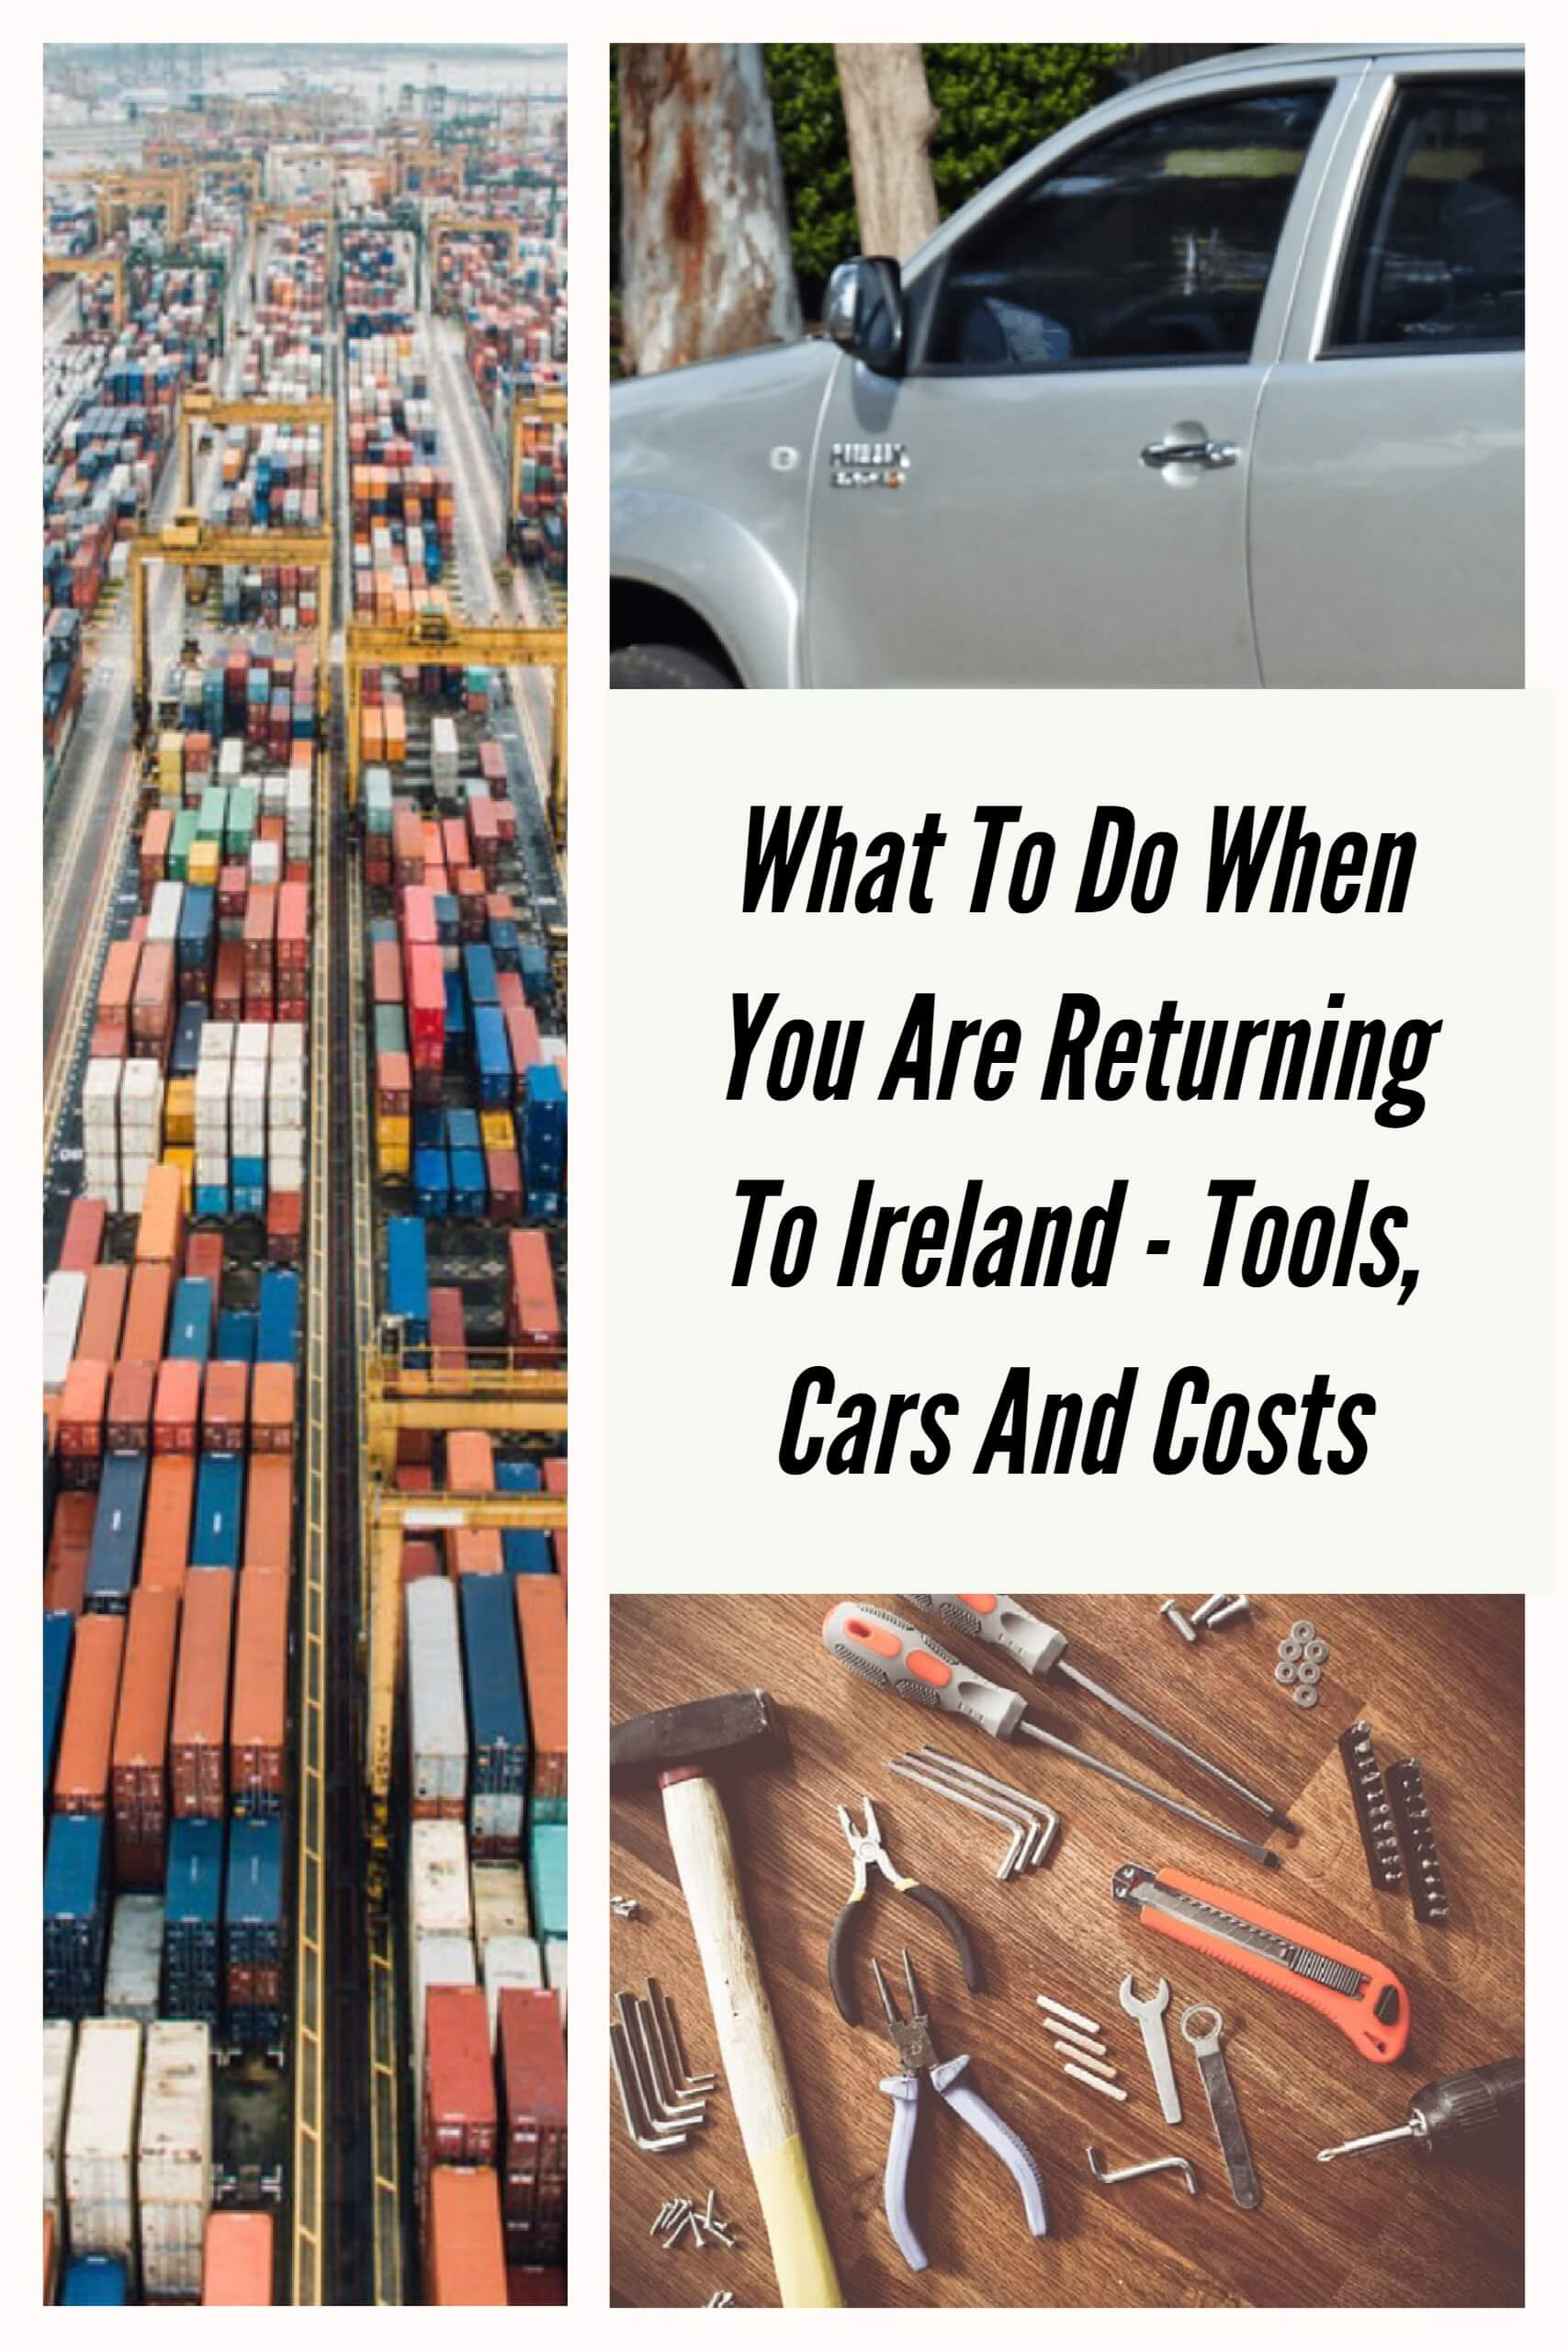 What to do when you are returning to Ireland